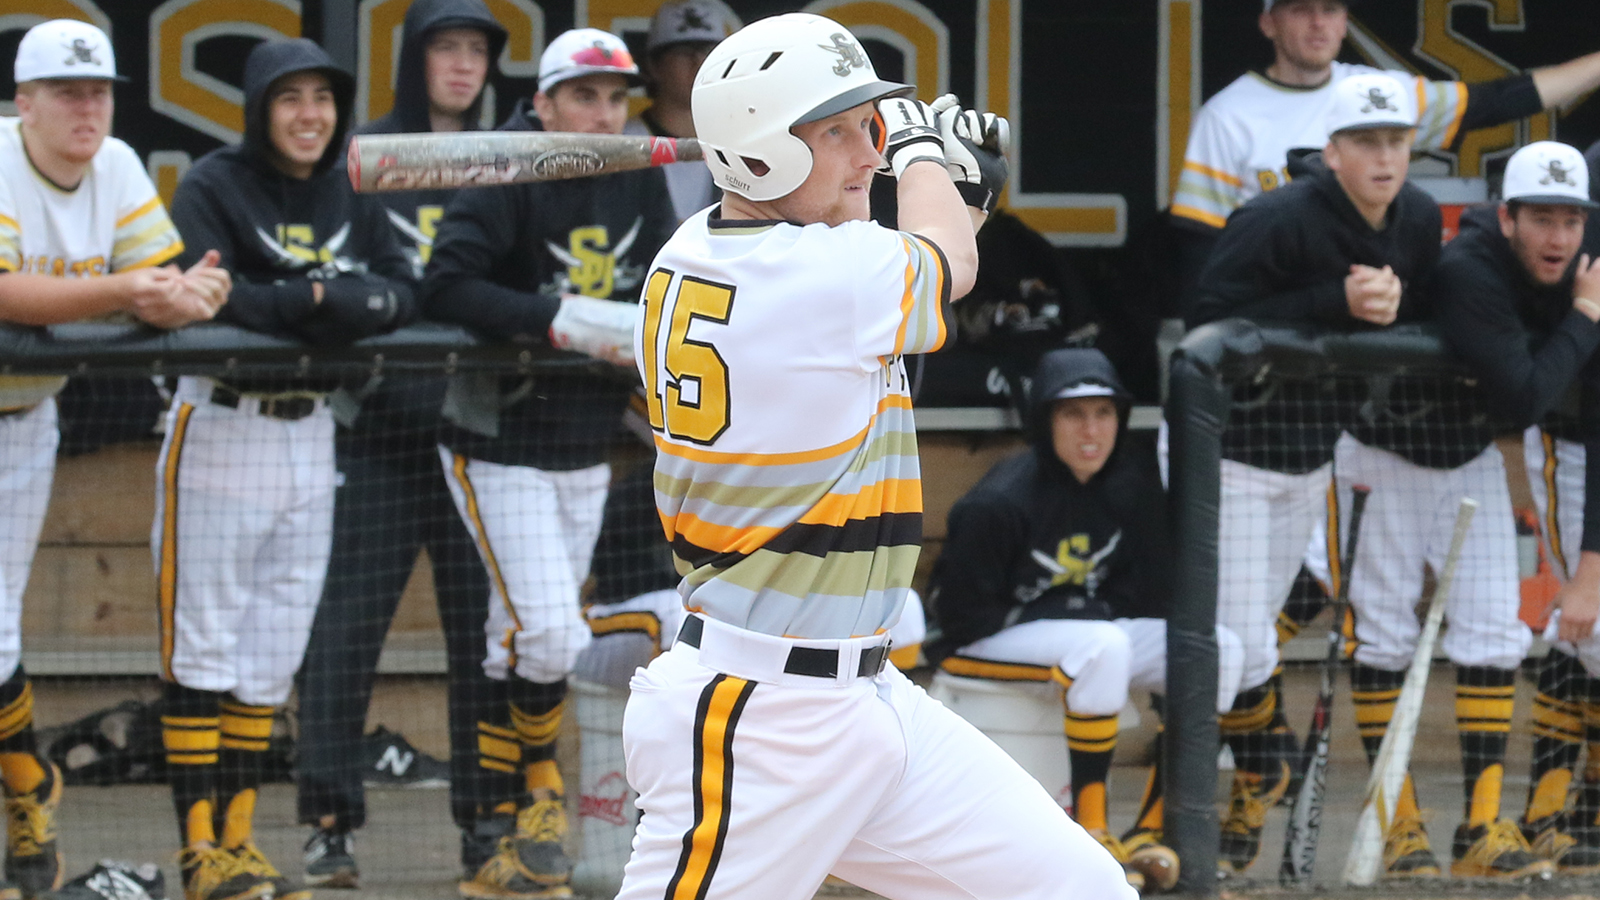 Pirates Storm Back to Knock Off Millikin and Take Series